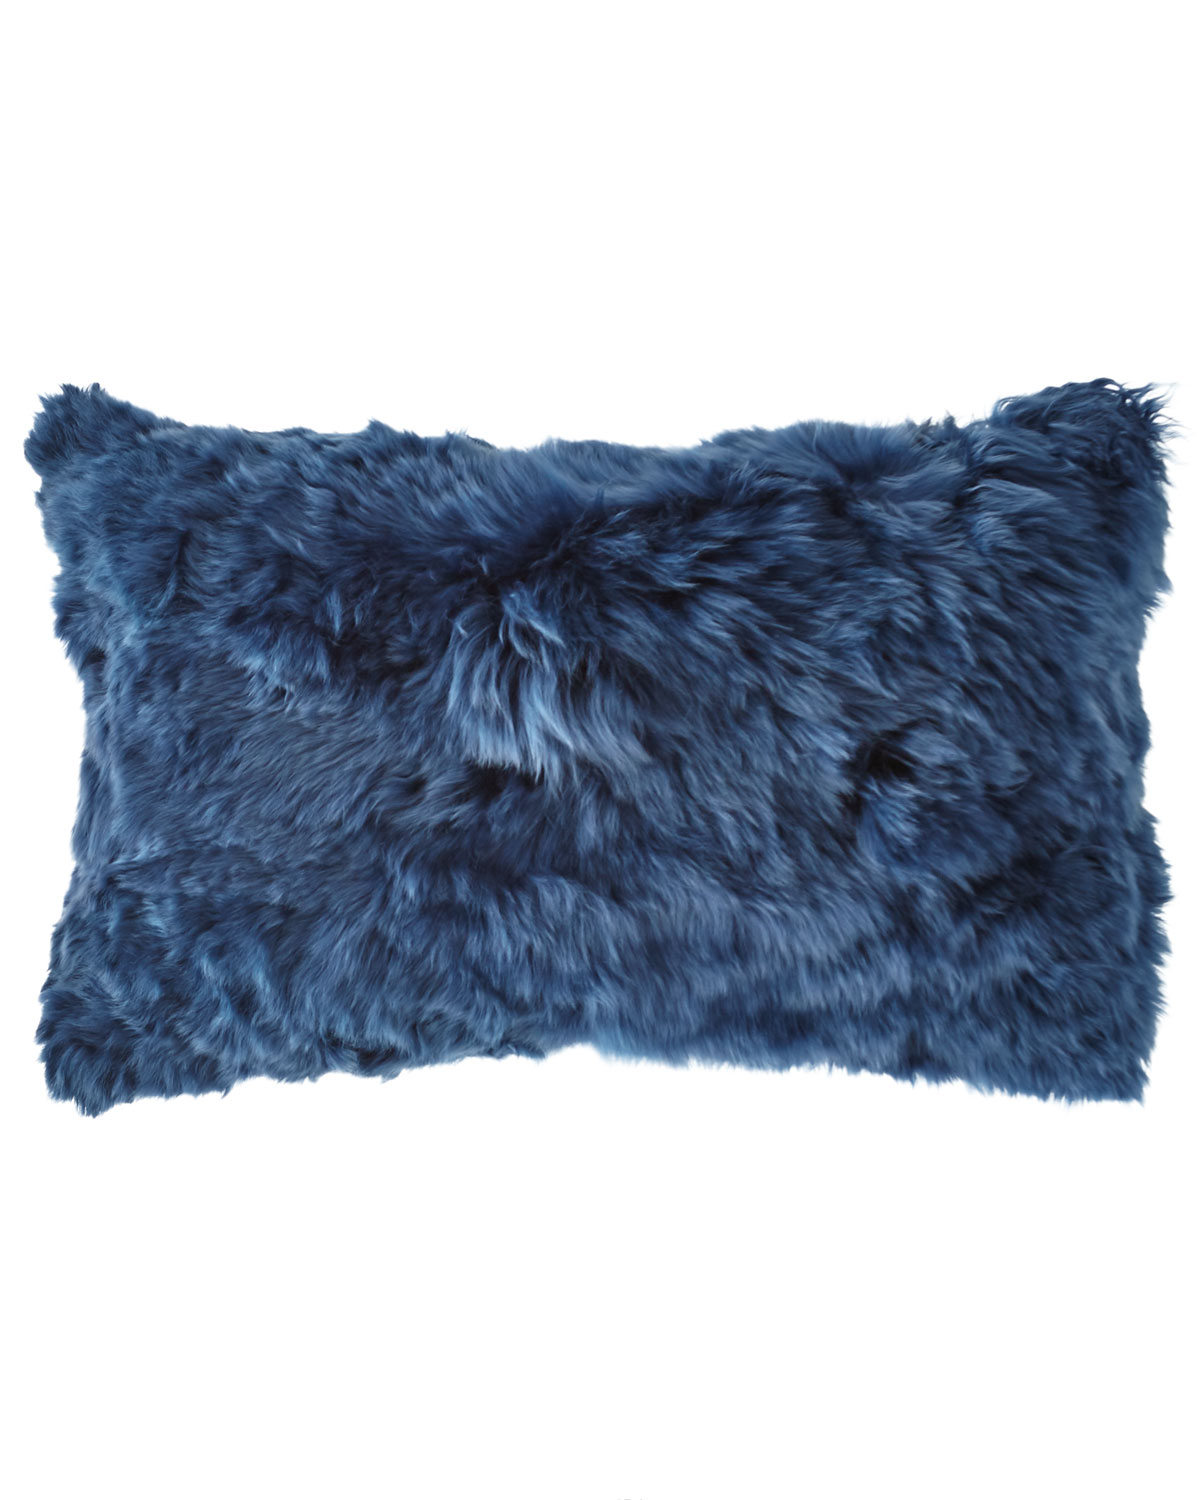 Suri Alpaca Rectangular Pillow